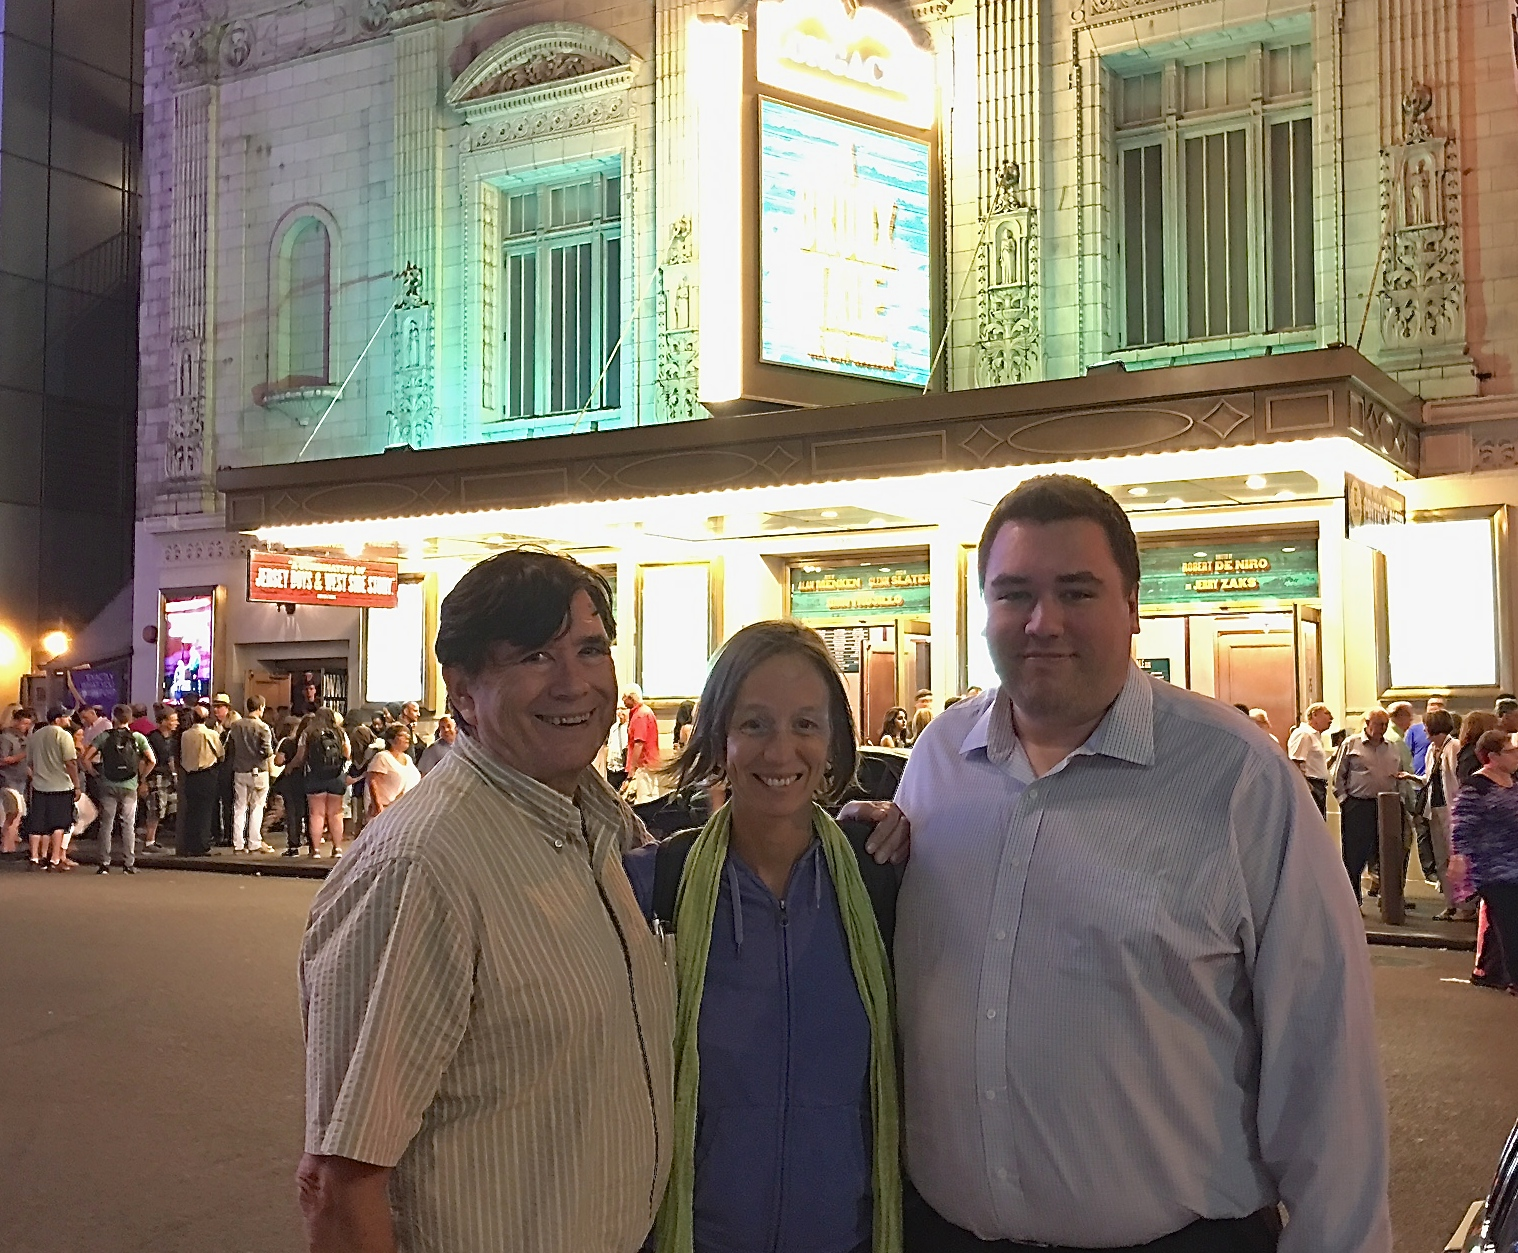 John, Ana, & Greg outside of the play THE BRONX TALE